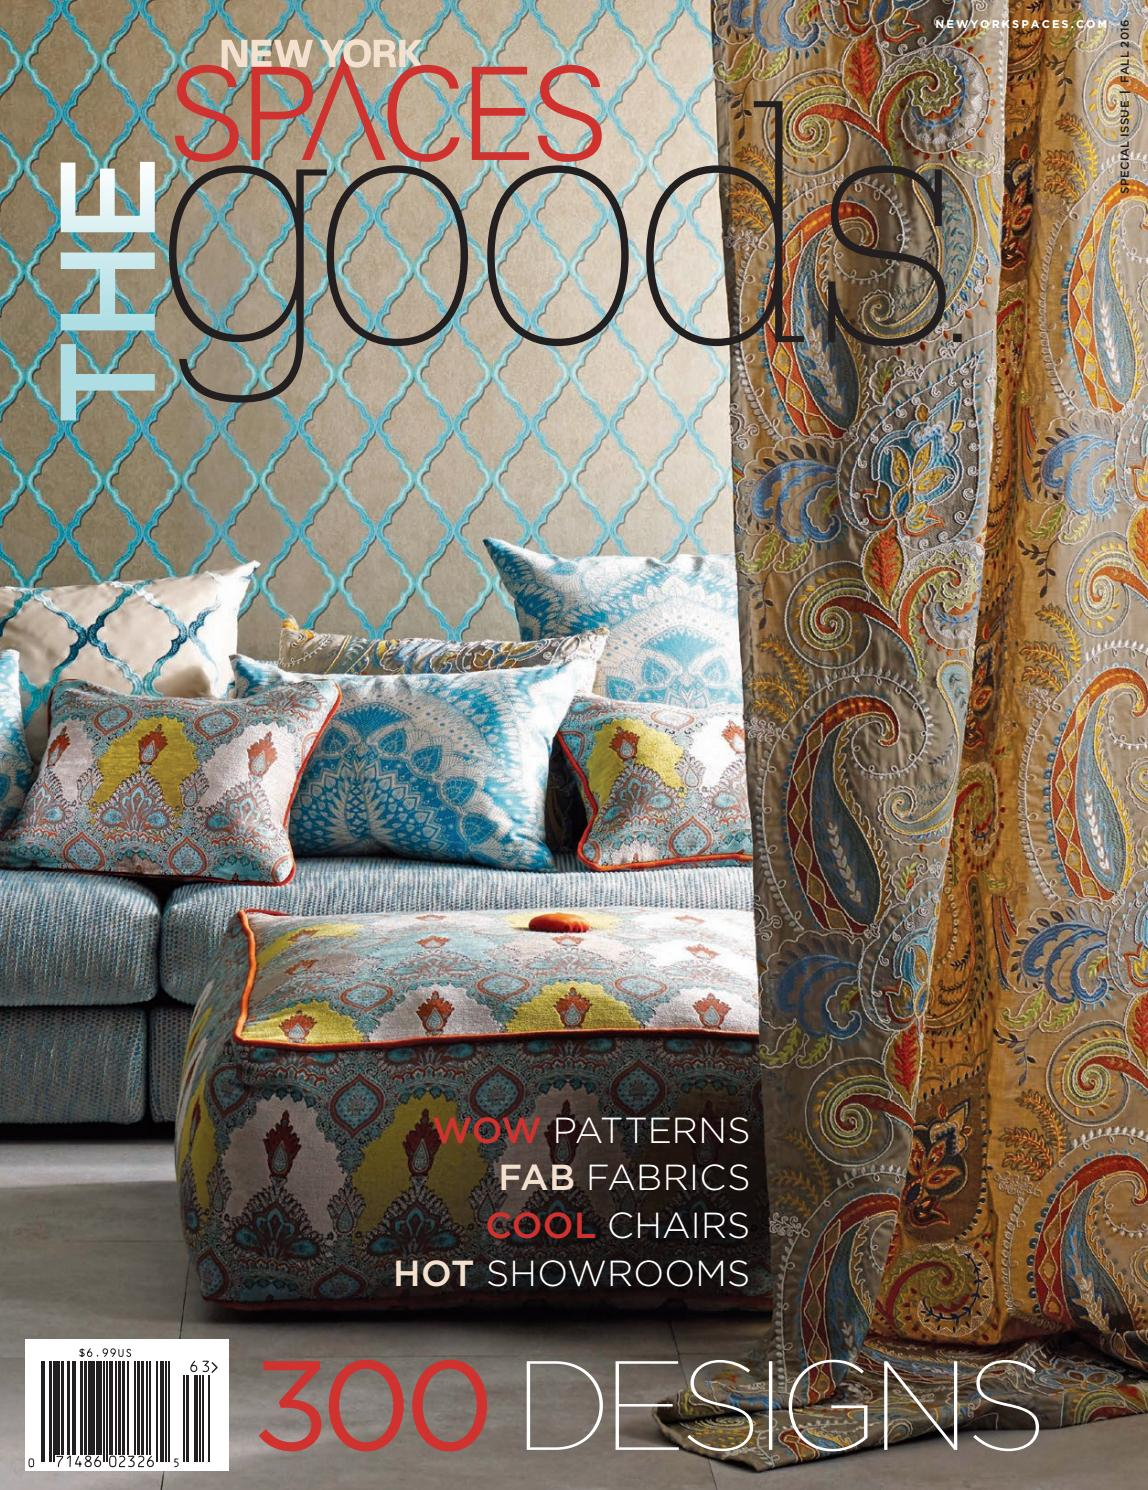 New York Spaces Fall 2016 The Goodsdavler Media – Issuu For Tufan Cement Garden Stools (View 17 of 25)